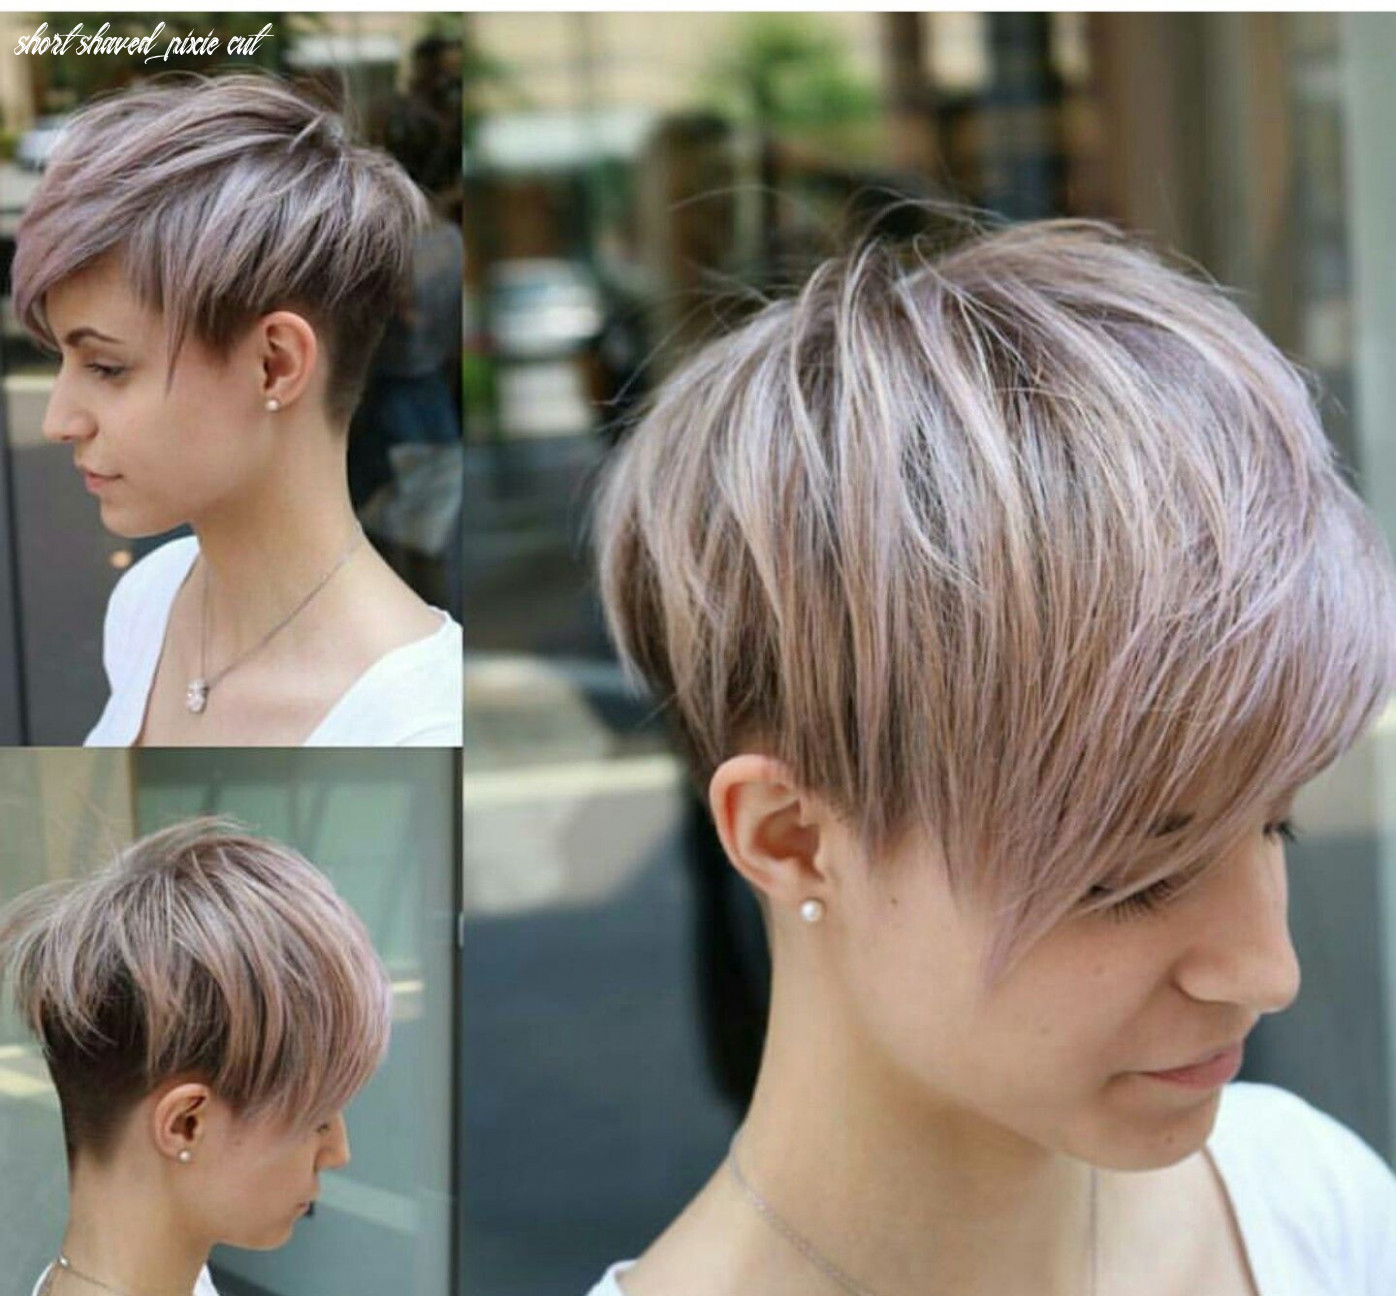 Pin on hair short shaved pixie cut